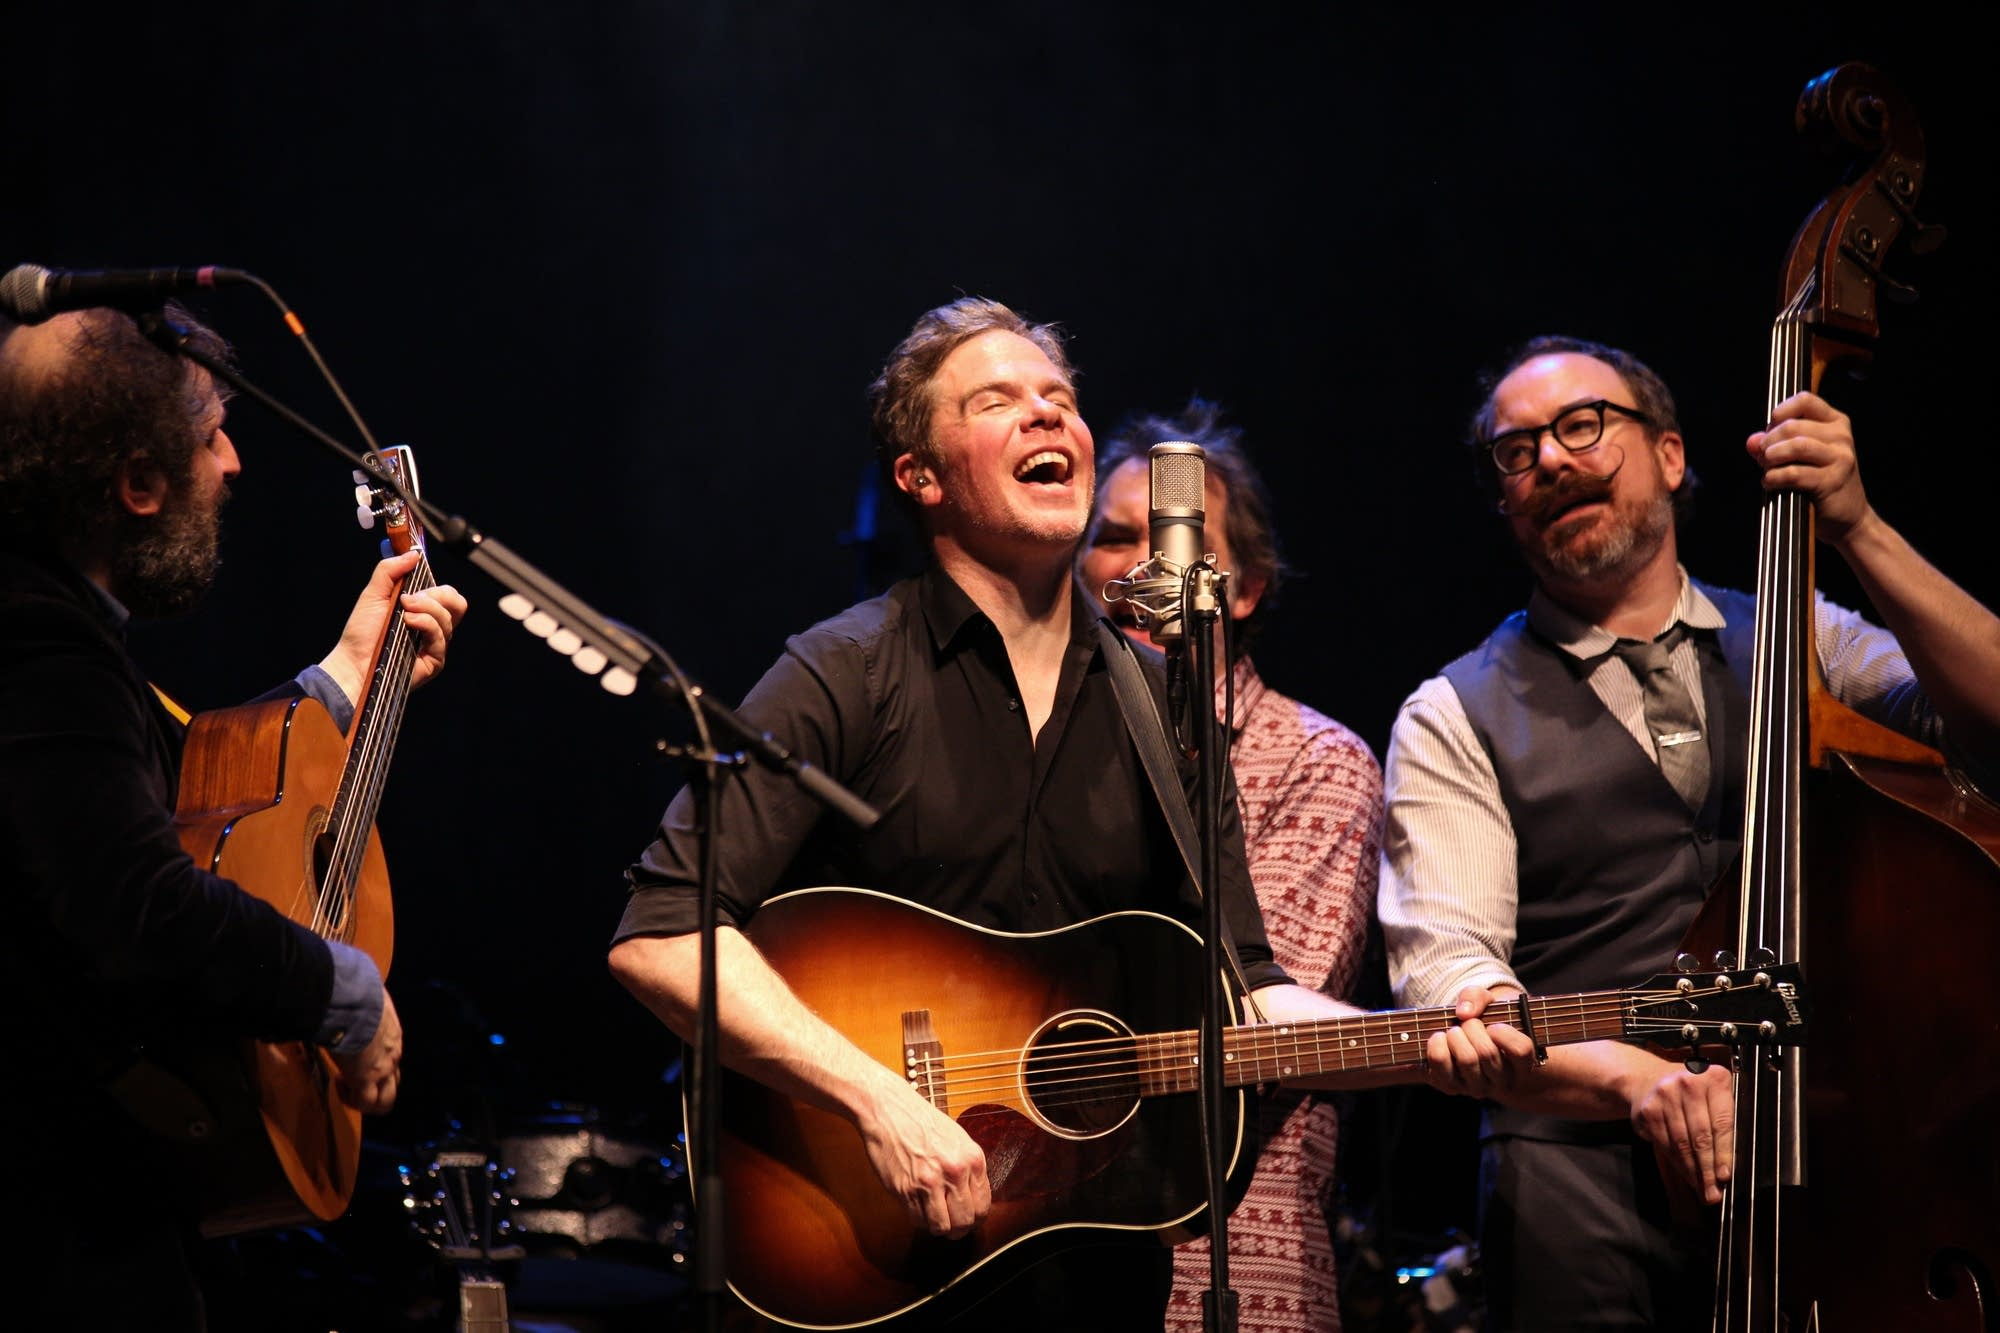 Josh Ritter performs at the Fitzgerald Theater